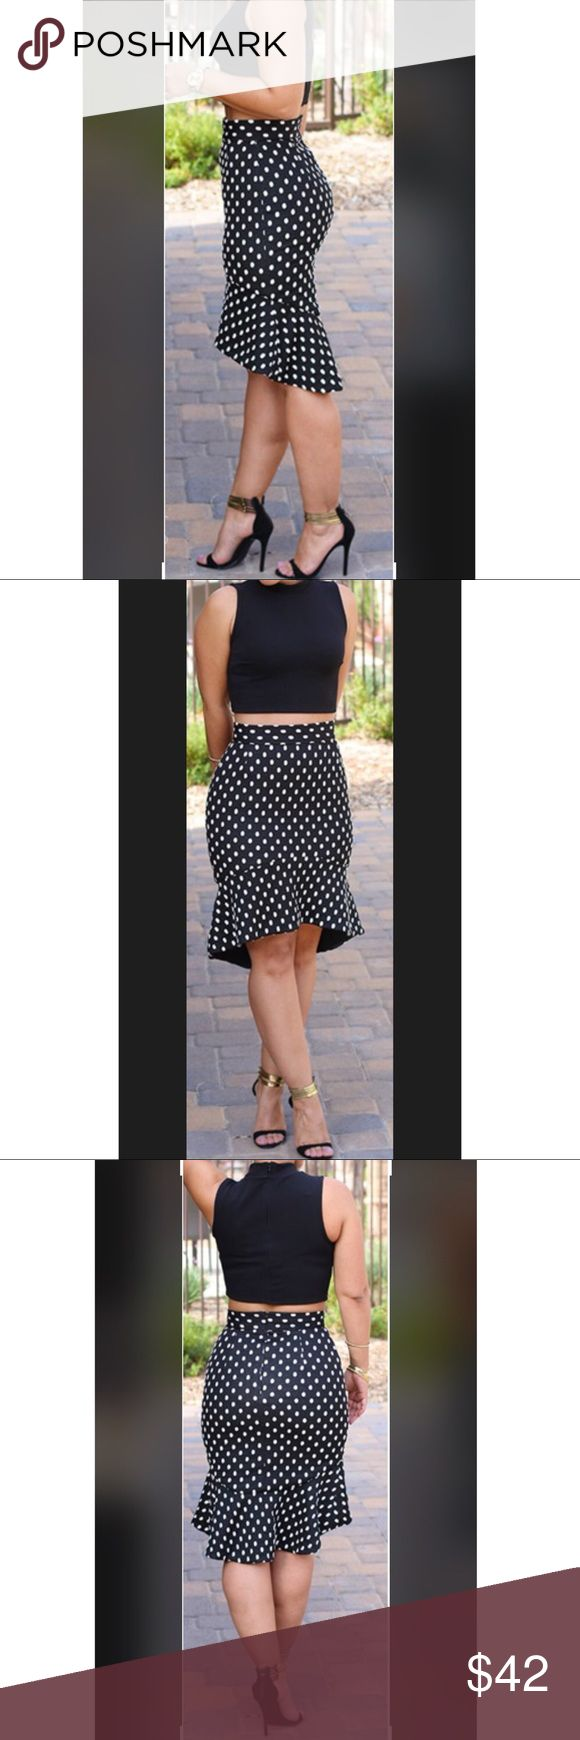 New| POLKA DOT BLACK TRUMPET SKIRT Polyester. Spandex. Zipper in rear. A beautiful skirt for so many occasions. Work. Date. Girls N O. Concert. Cocktails. Wedding. Graduation. Anniversary. Cruise. 51Twenty Skirts